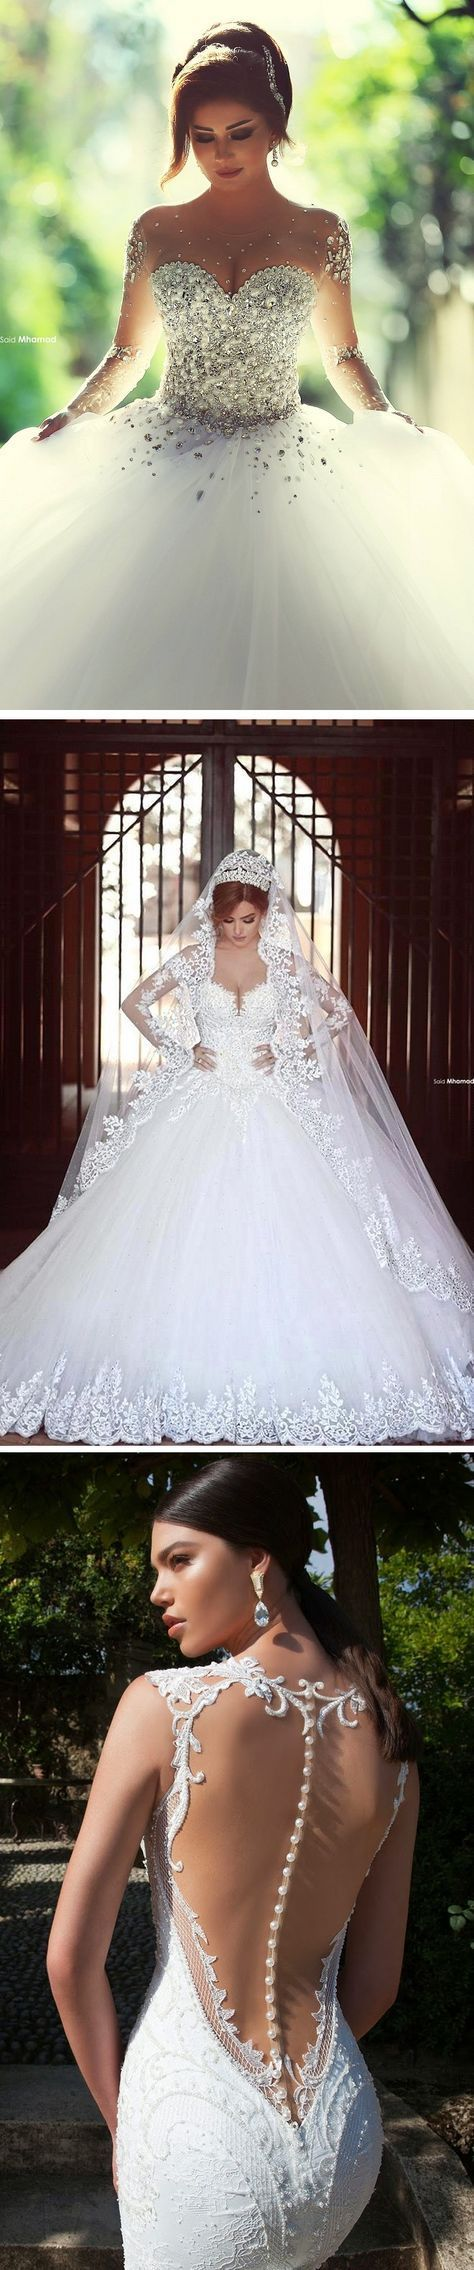 OMG! This could be THE wedding dress I was looking for